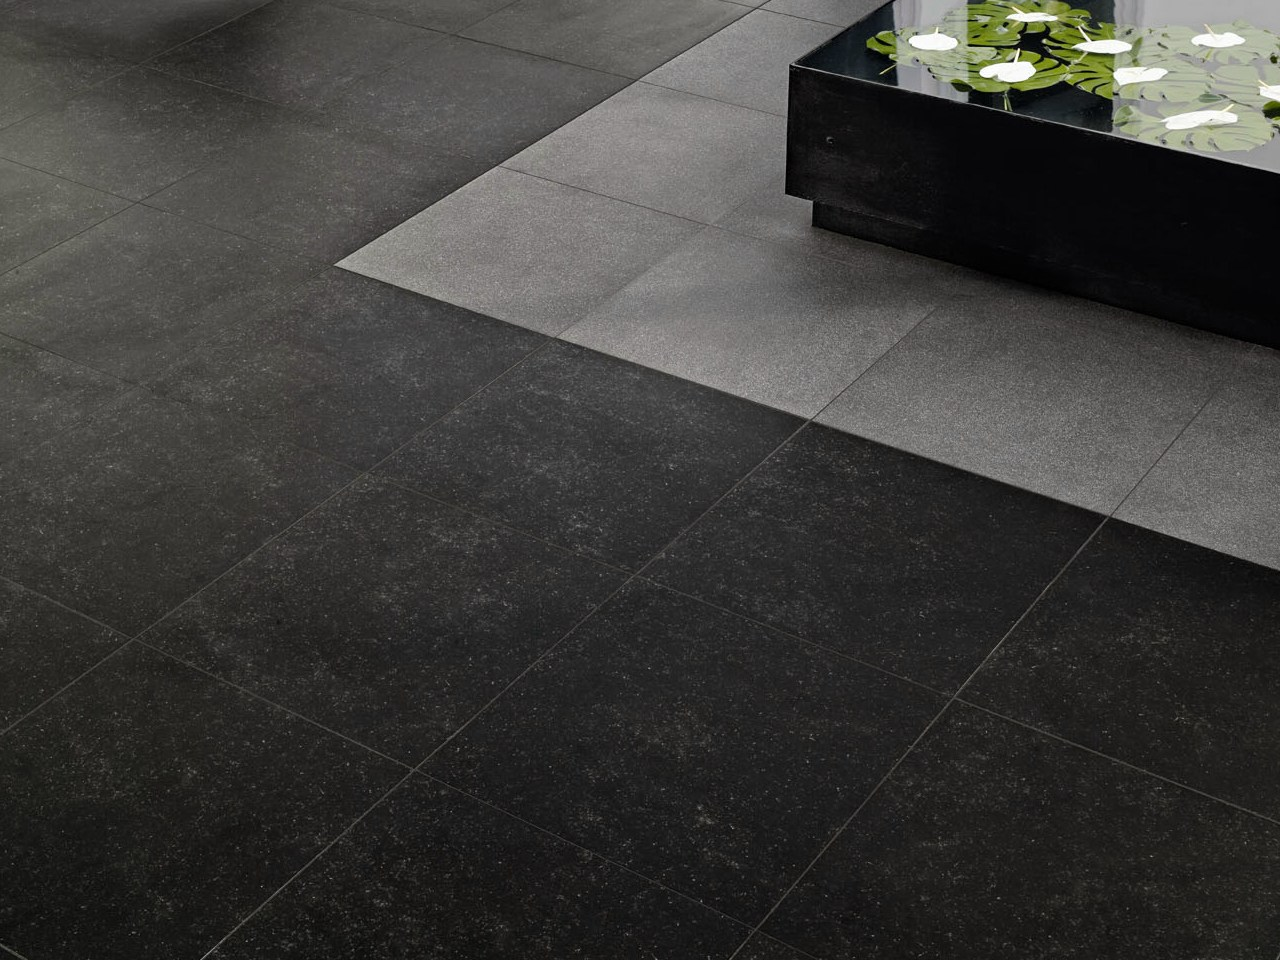 indoor outdoor porcelain stoneware wall floor tiles pierre bleue by marazzi. Black Bedroom Furniture Sets. Home Design Ideas